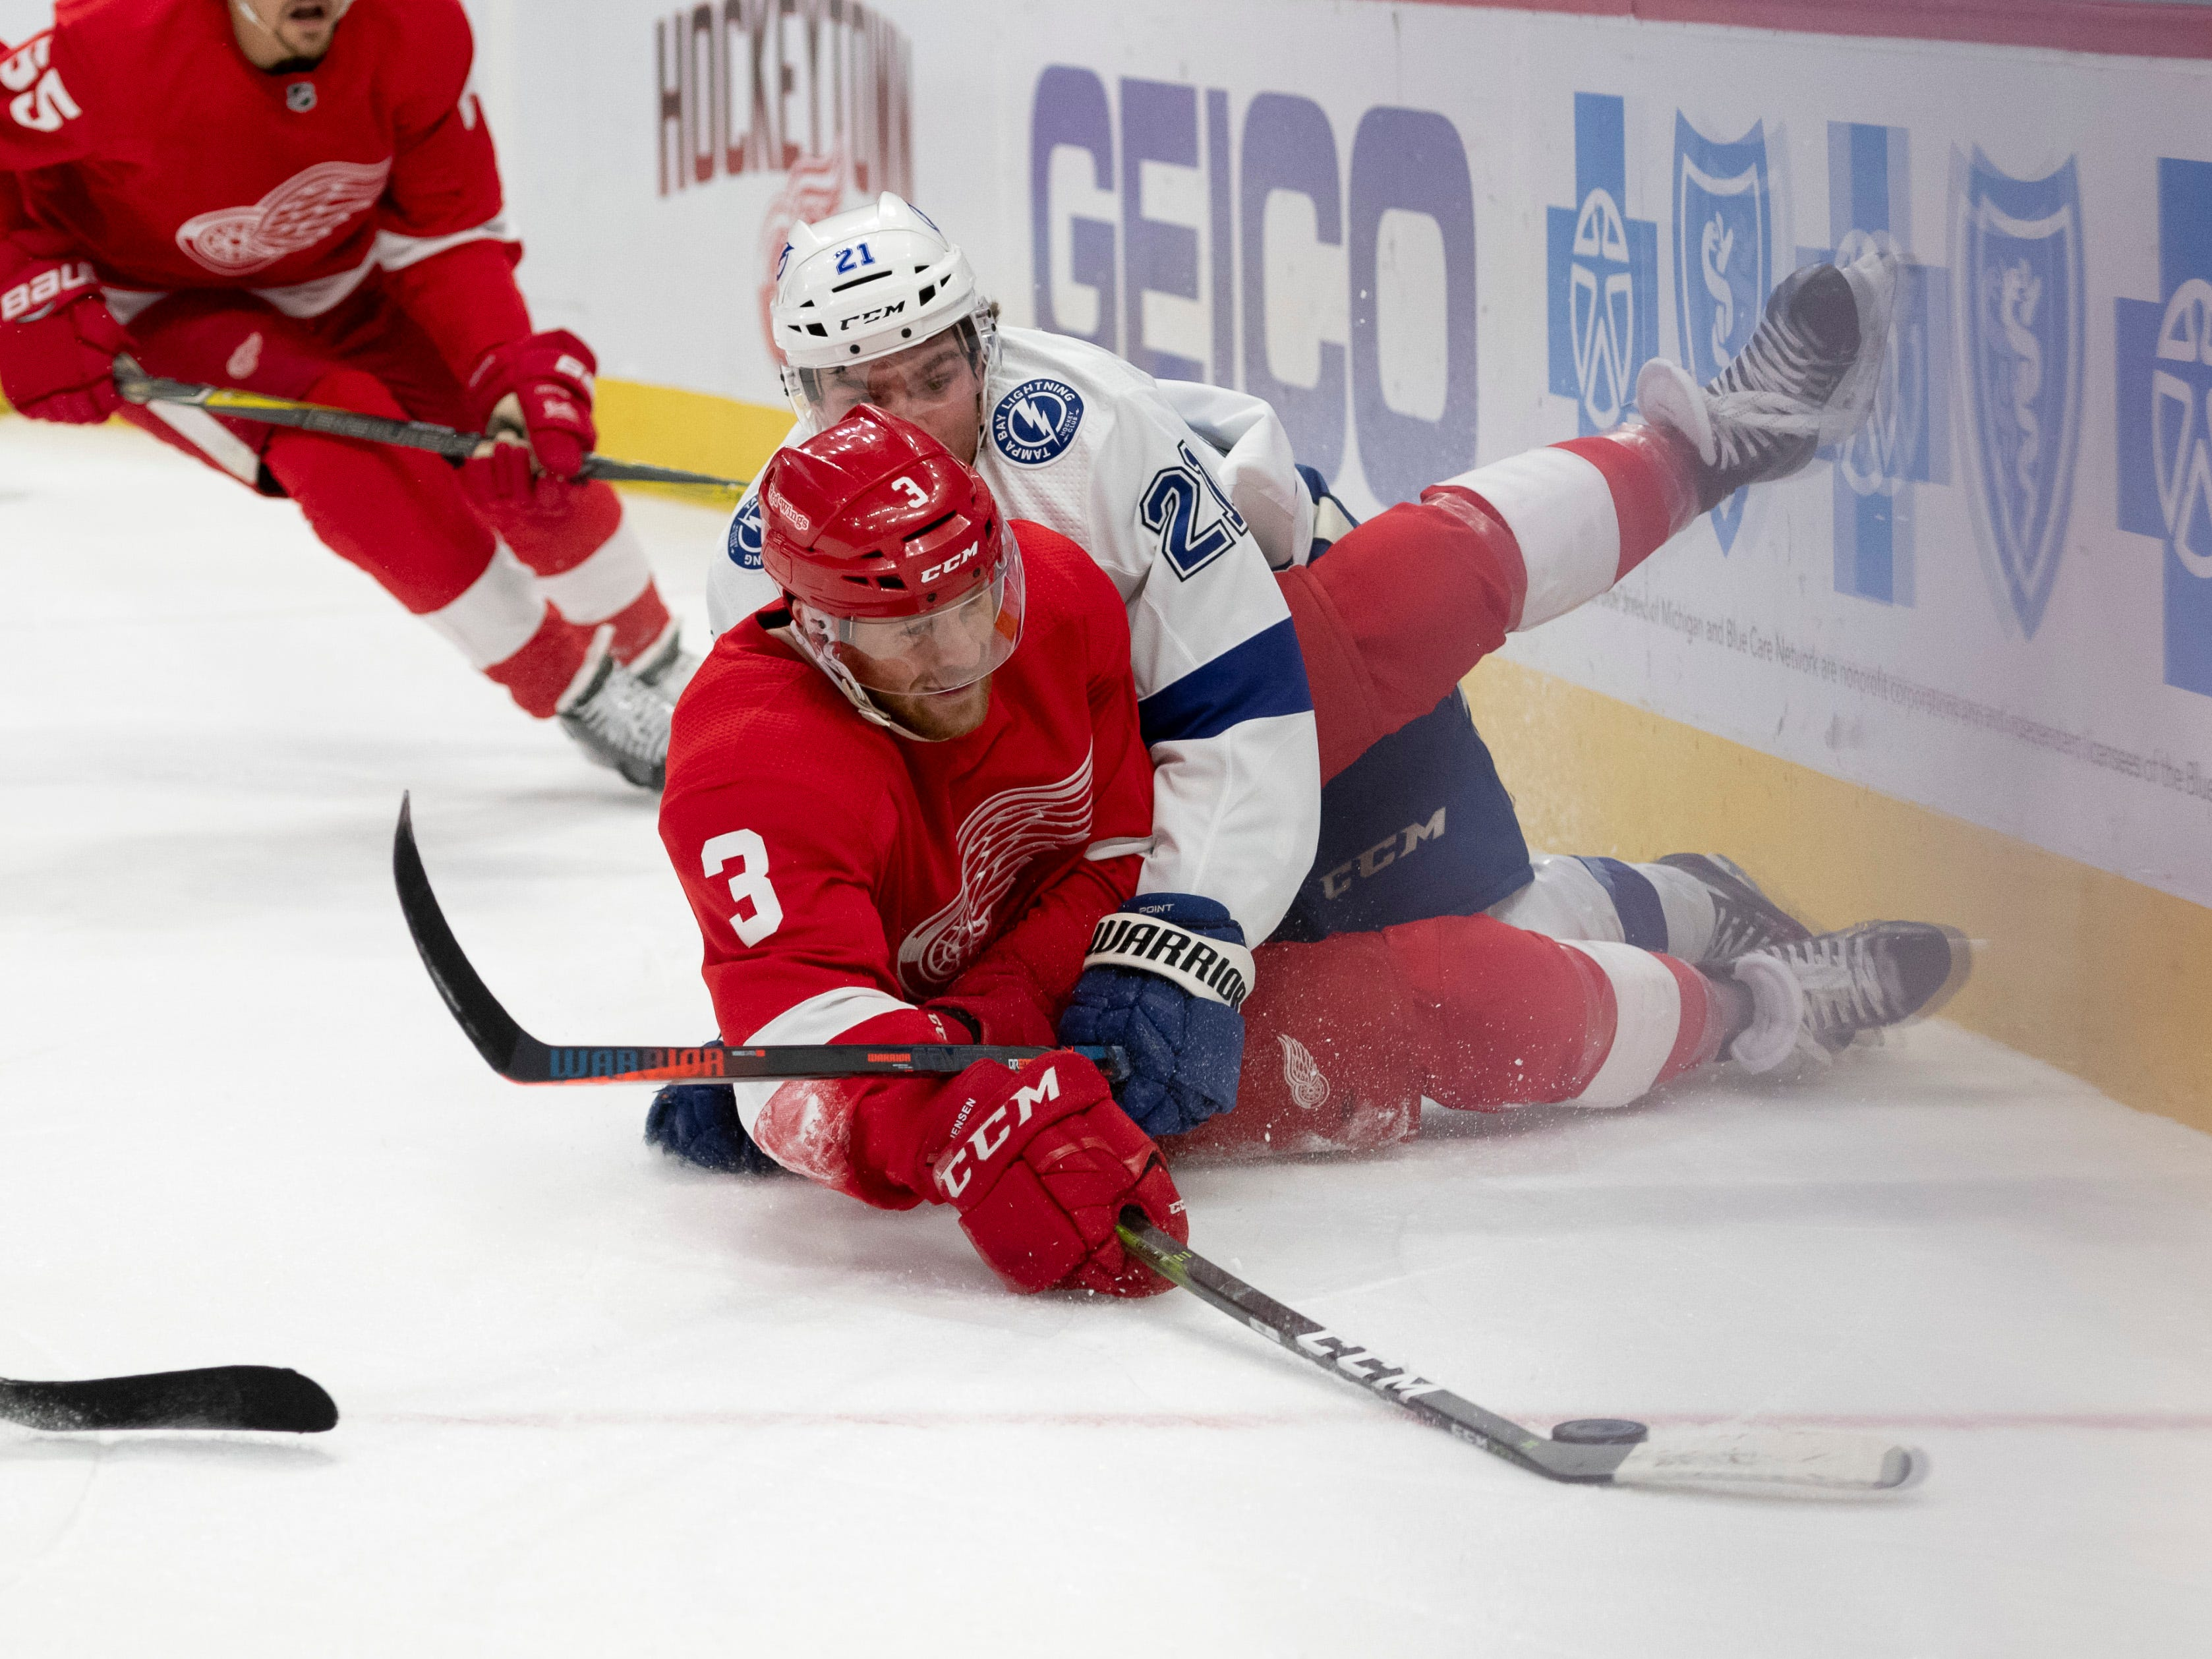 Detroit defenseman Nick Jensen and Tampa Bay center Brayden Point hit the ice while battling for the puck in the second period.